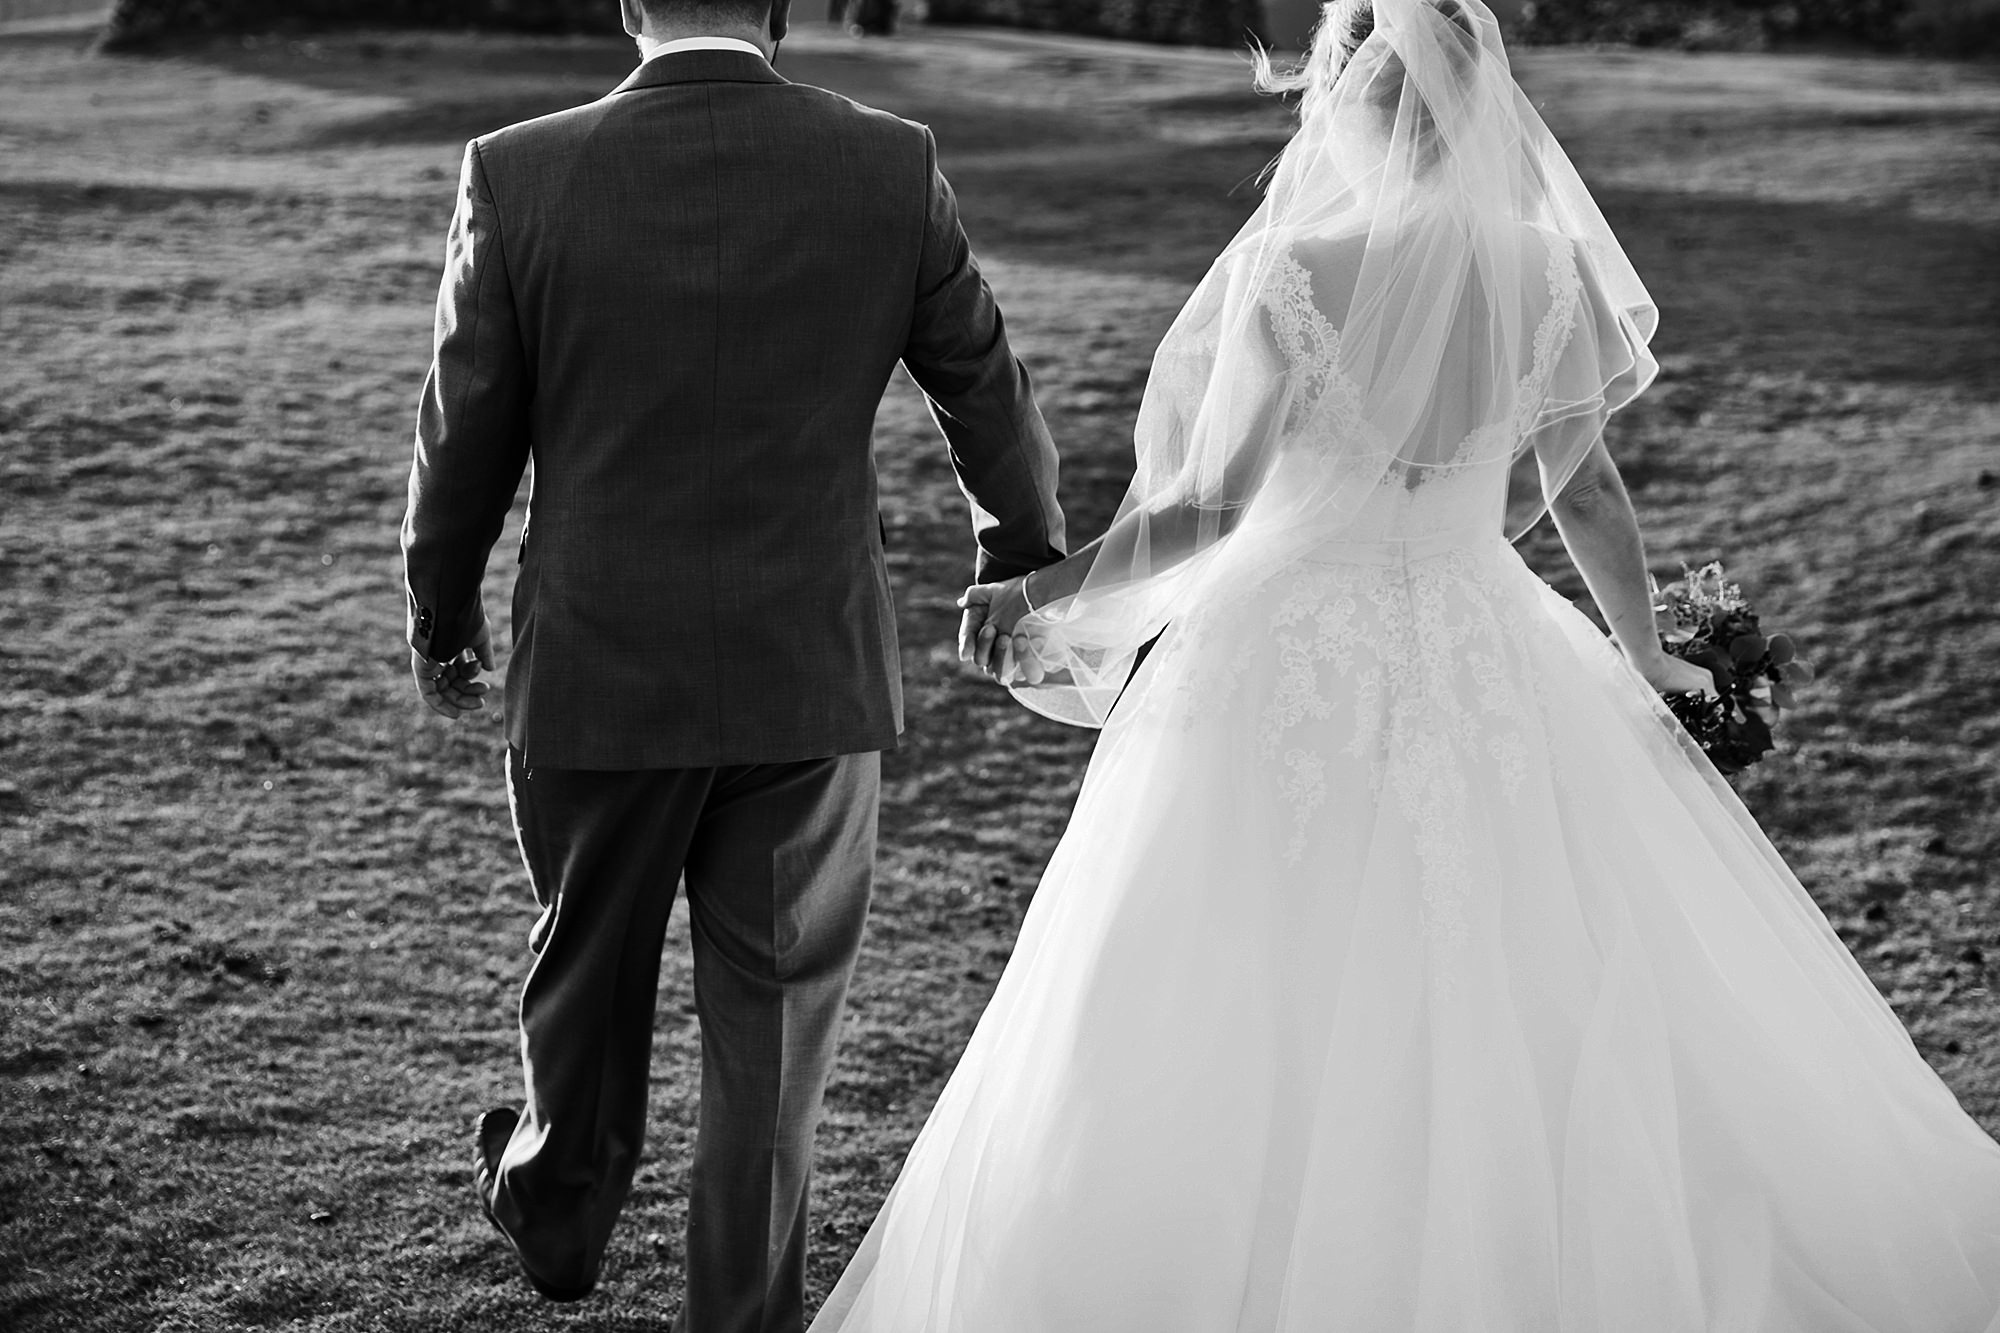 Castell dinas bran wedding photography a bride and groom hold hands as they walk together